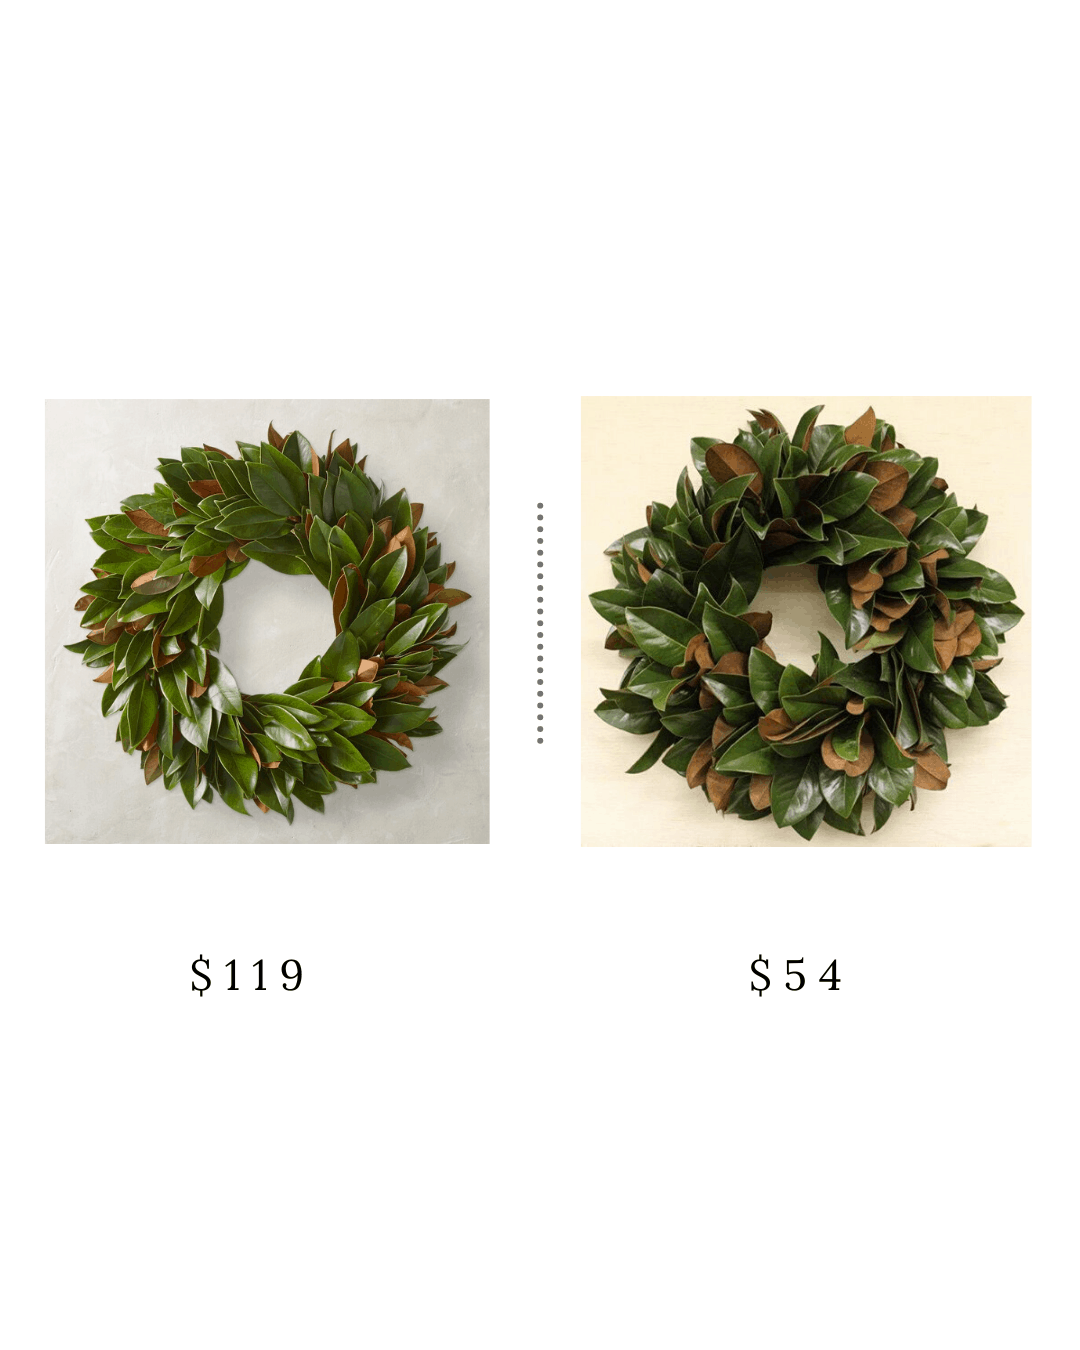 Christmas porch decor with splurge and save options.  This porch decor includes black and white minimal decor with layered mats and skinny trees.  #christmasdecor #porchdecor #magnoliawreath #dashandalbert